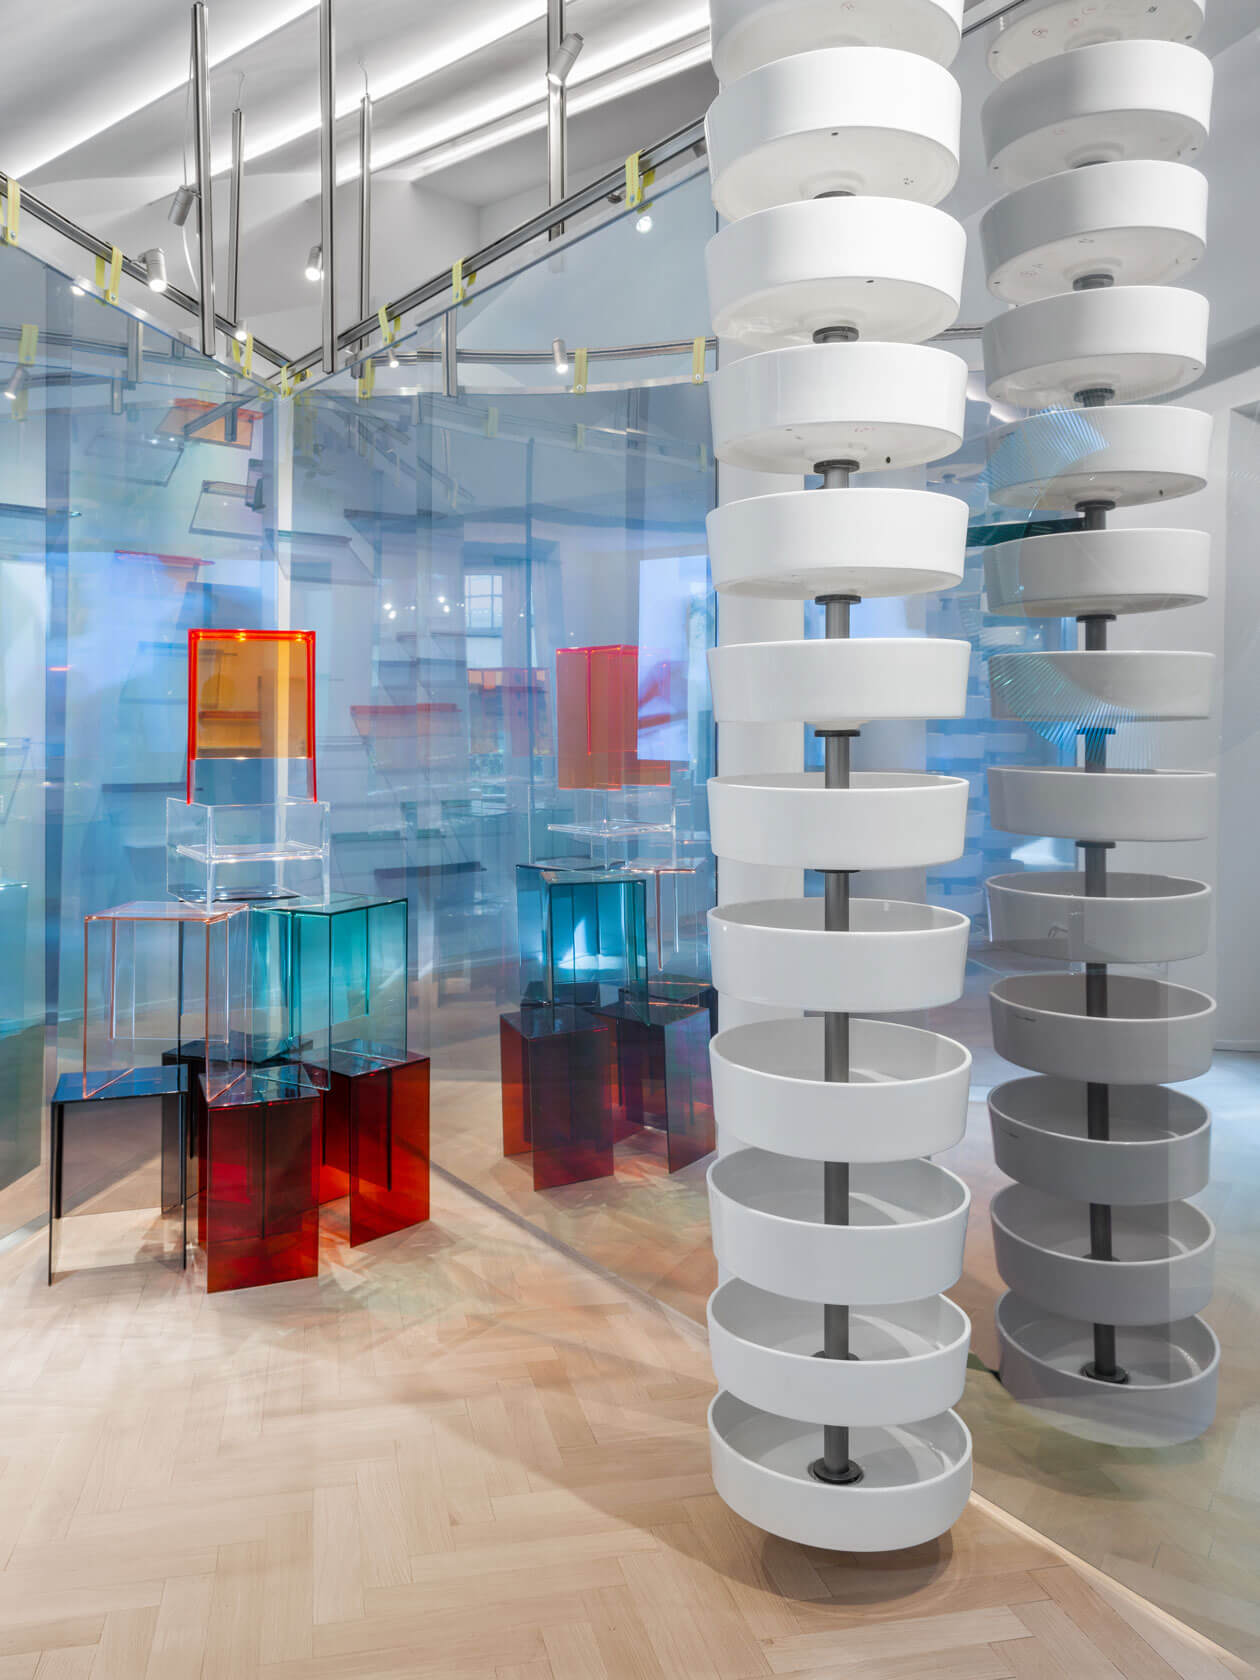 Washbasins and colored semi-transparent furnitures arranged to sculptures.